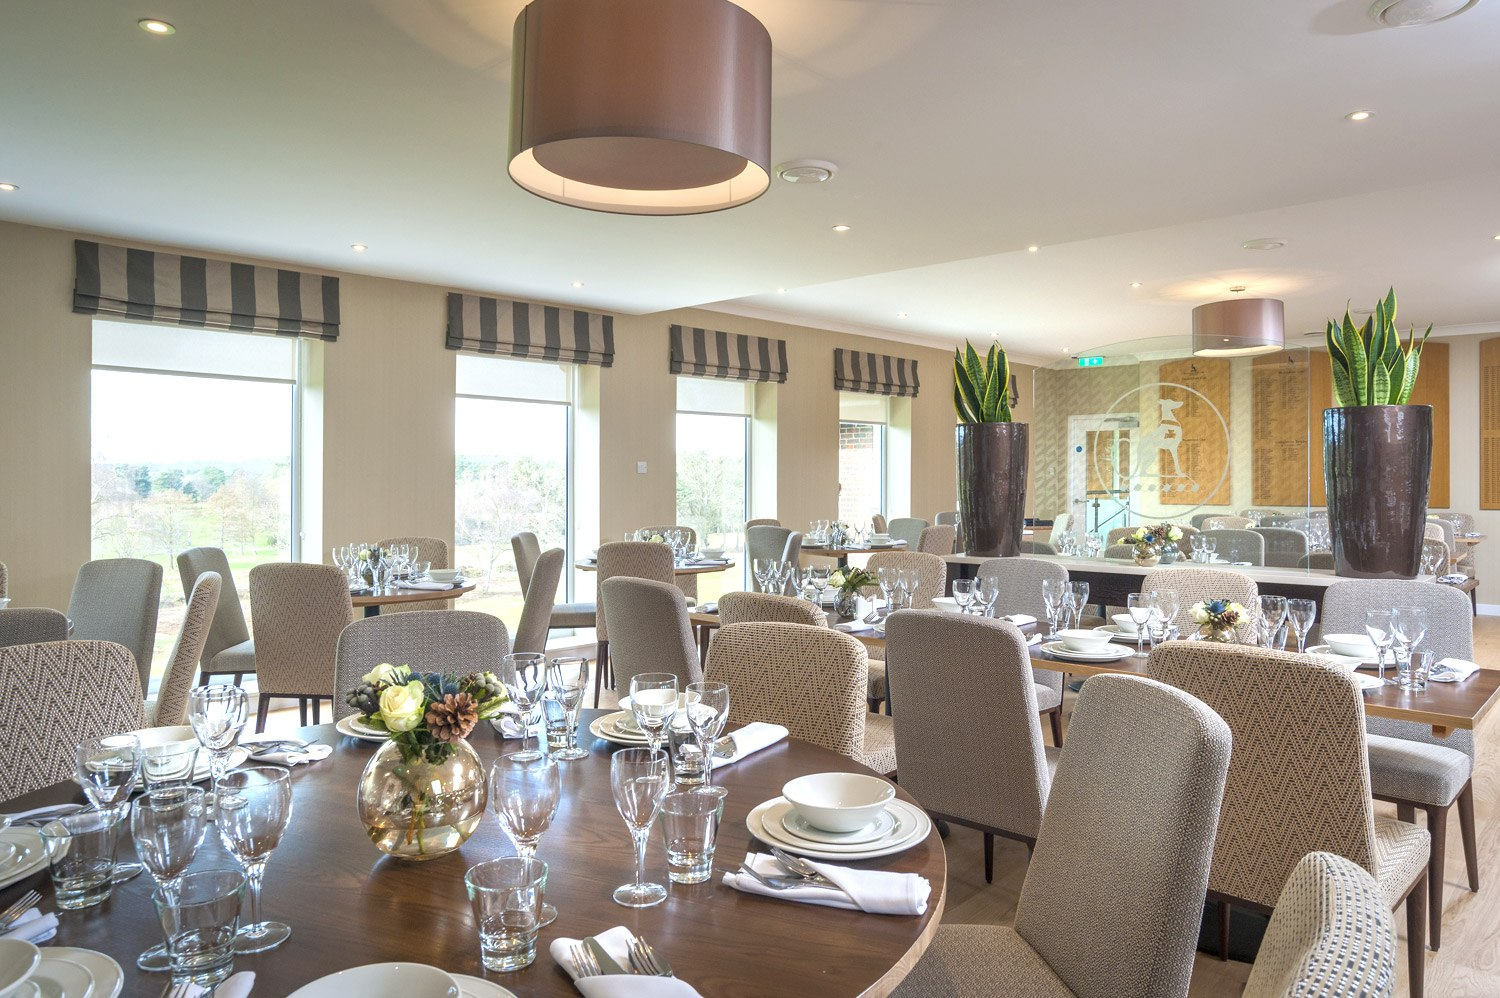 Colts Restaurant At Blackmoor Golf Club Rory Cashin